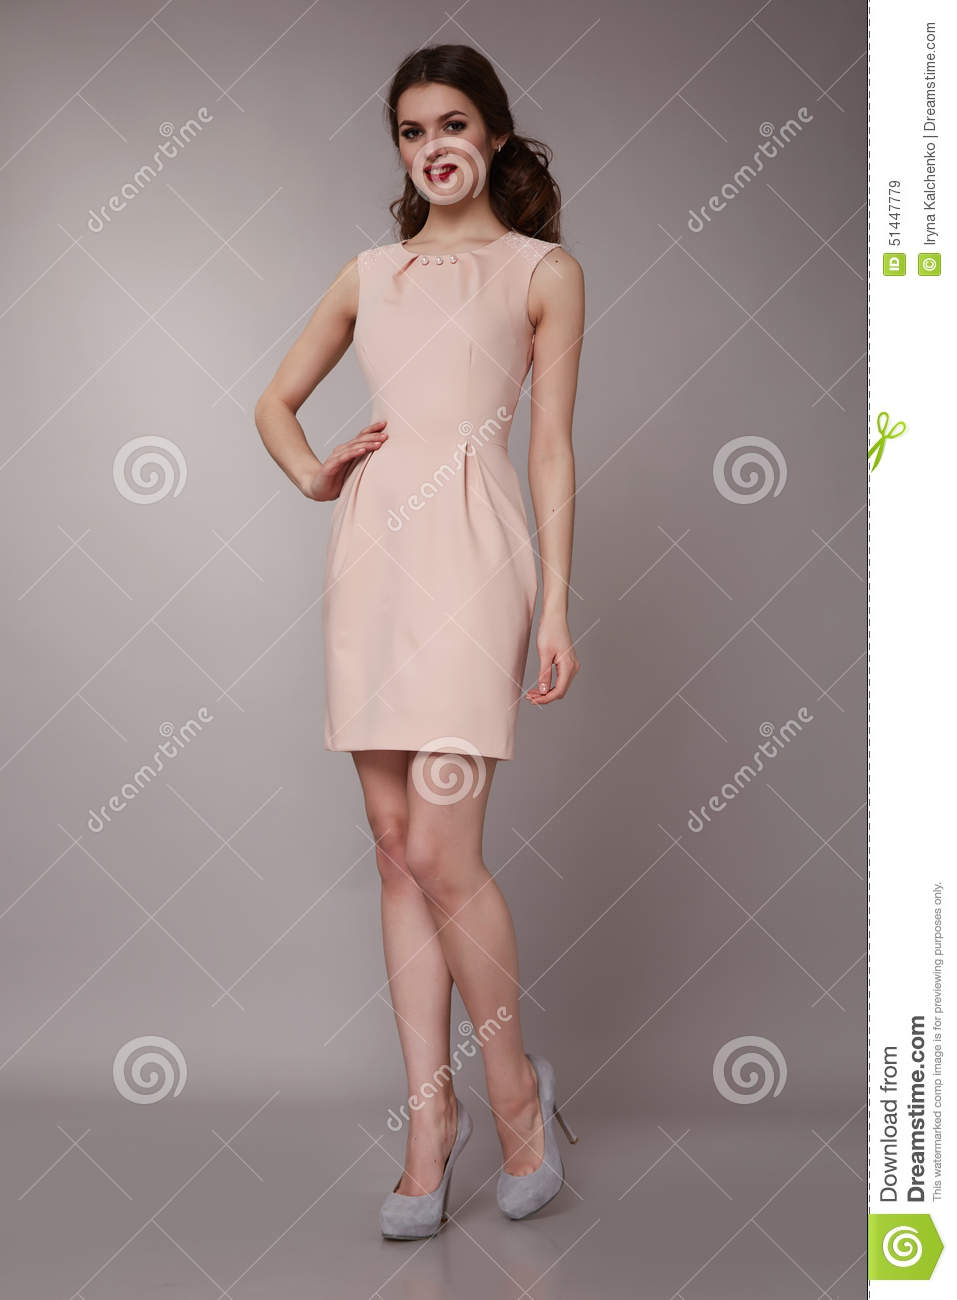 b5ac4b339dc235 Beautiful young girl with long wavy blond hair with a bright evening  make-up perfect summer tan thin figure dressed in colored short dress and high  heels ...